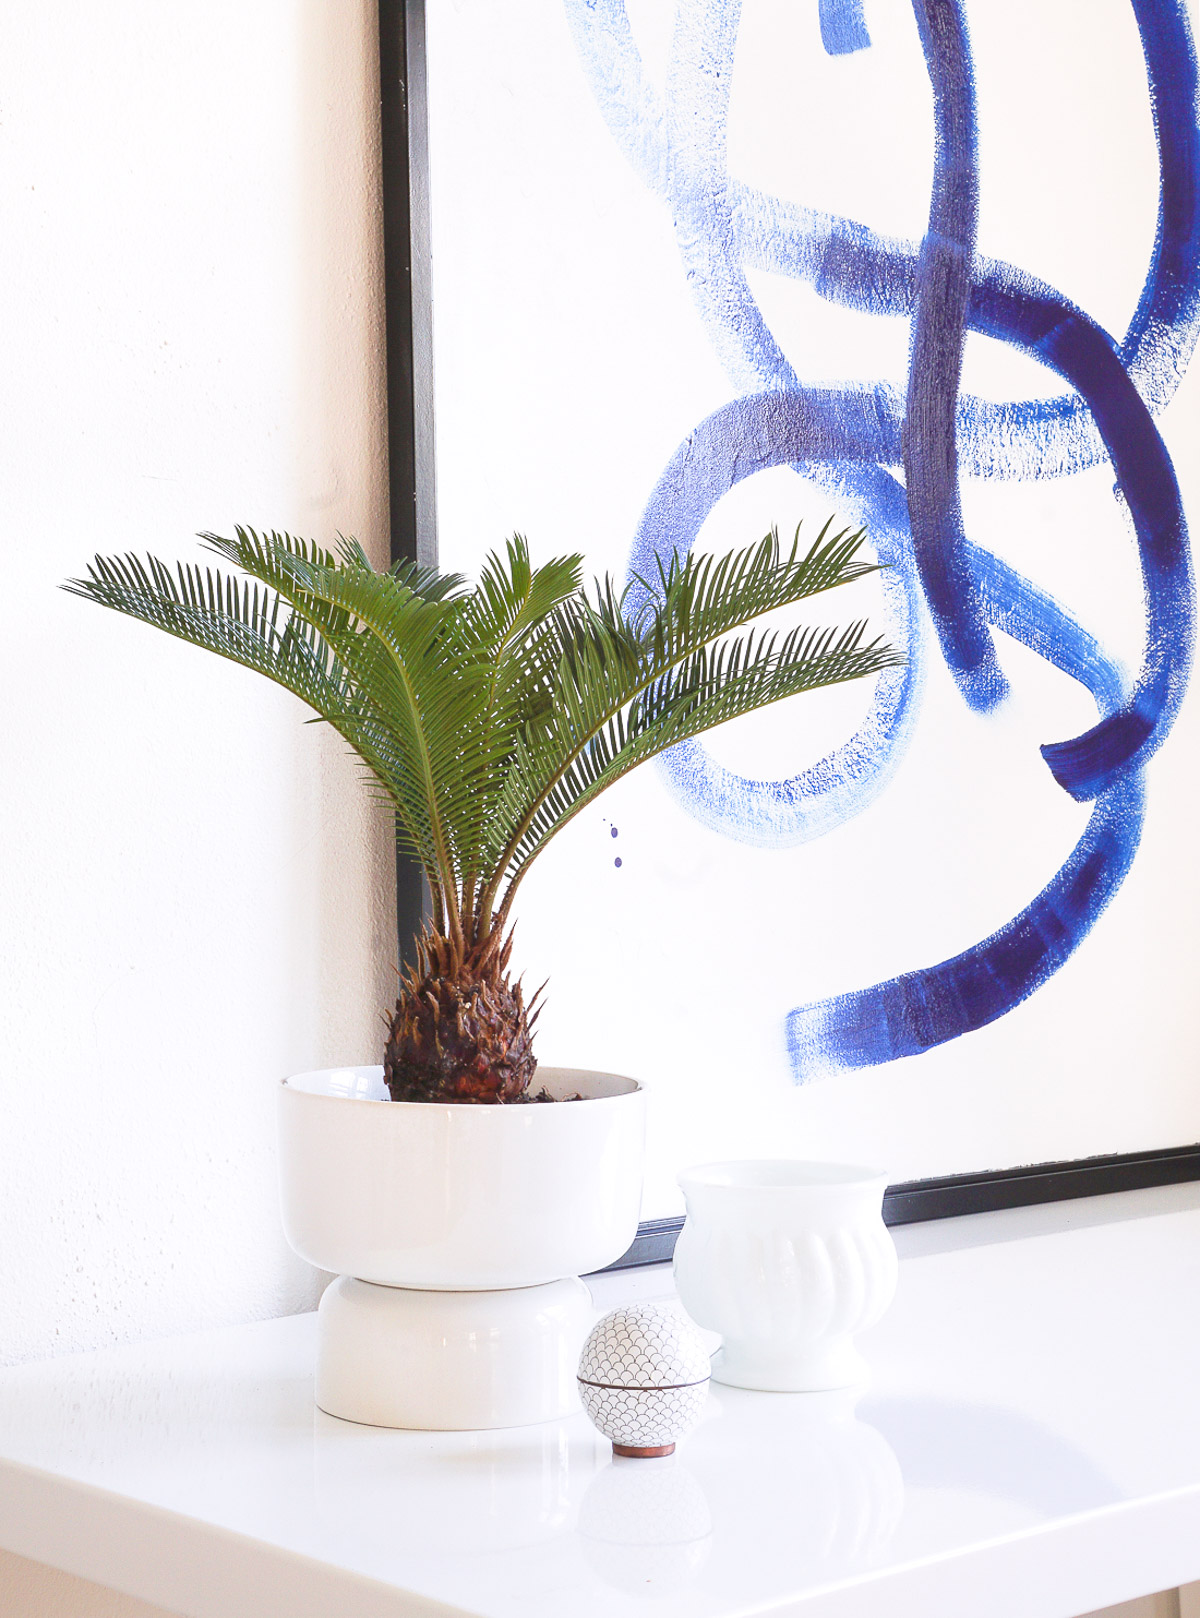 Sleek planters are easy to design and style into any room for a modern touch, like these IKEA planters